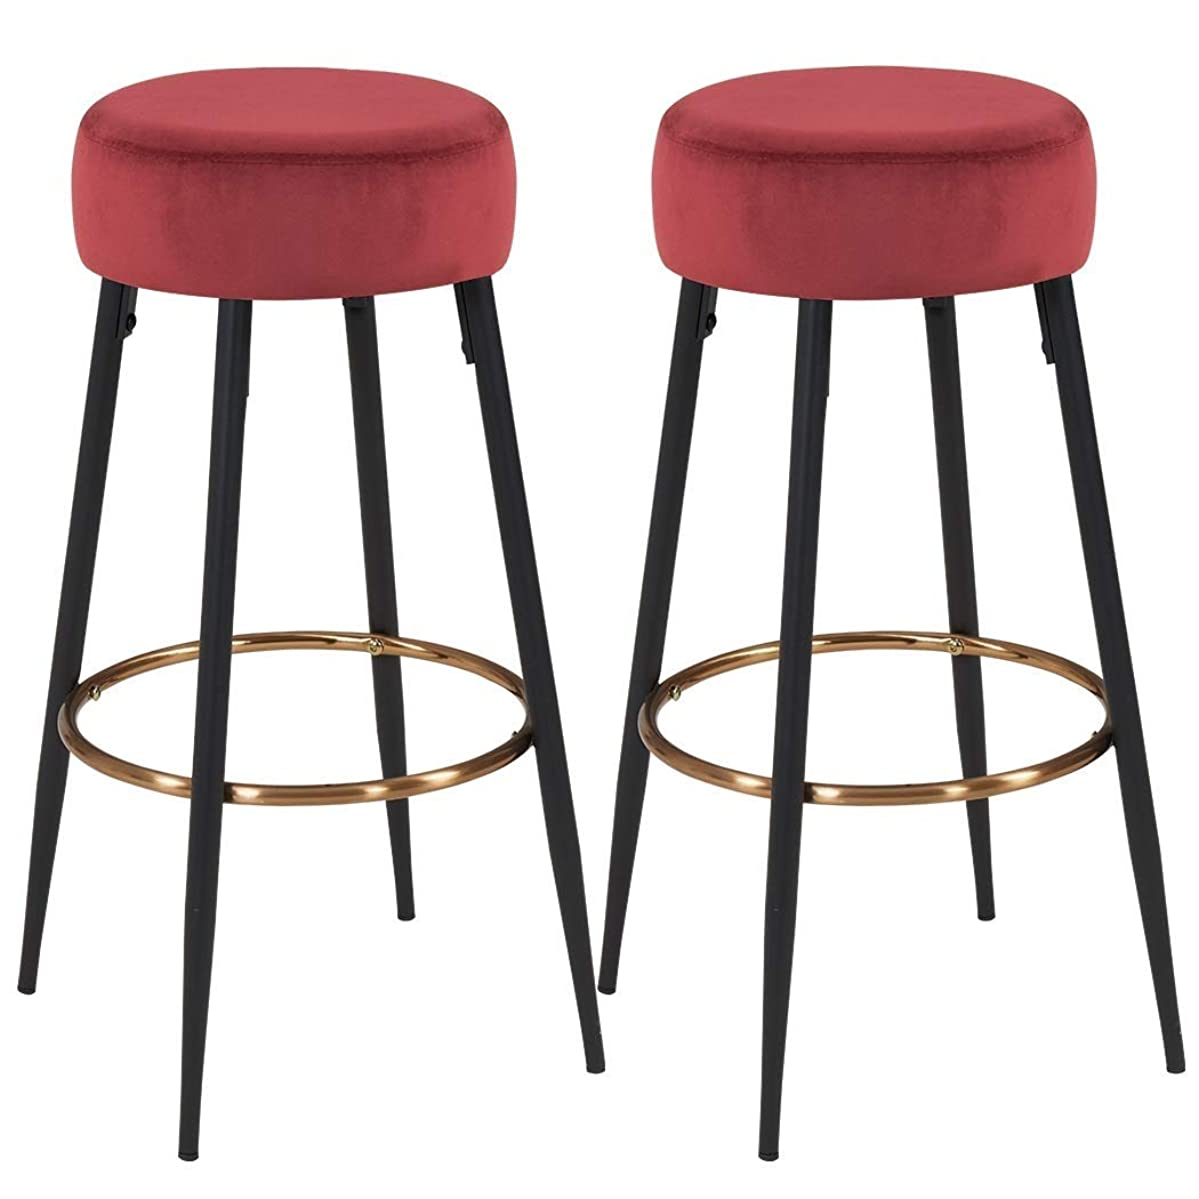 QIDI-Home Decoration Set of 2 Bar Stools Round Fabric Velvet Teal Cyan Green Barstool Metal Legs Thick Upholstery Seat Height 80 cm (Color : Red)